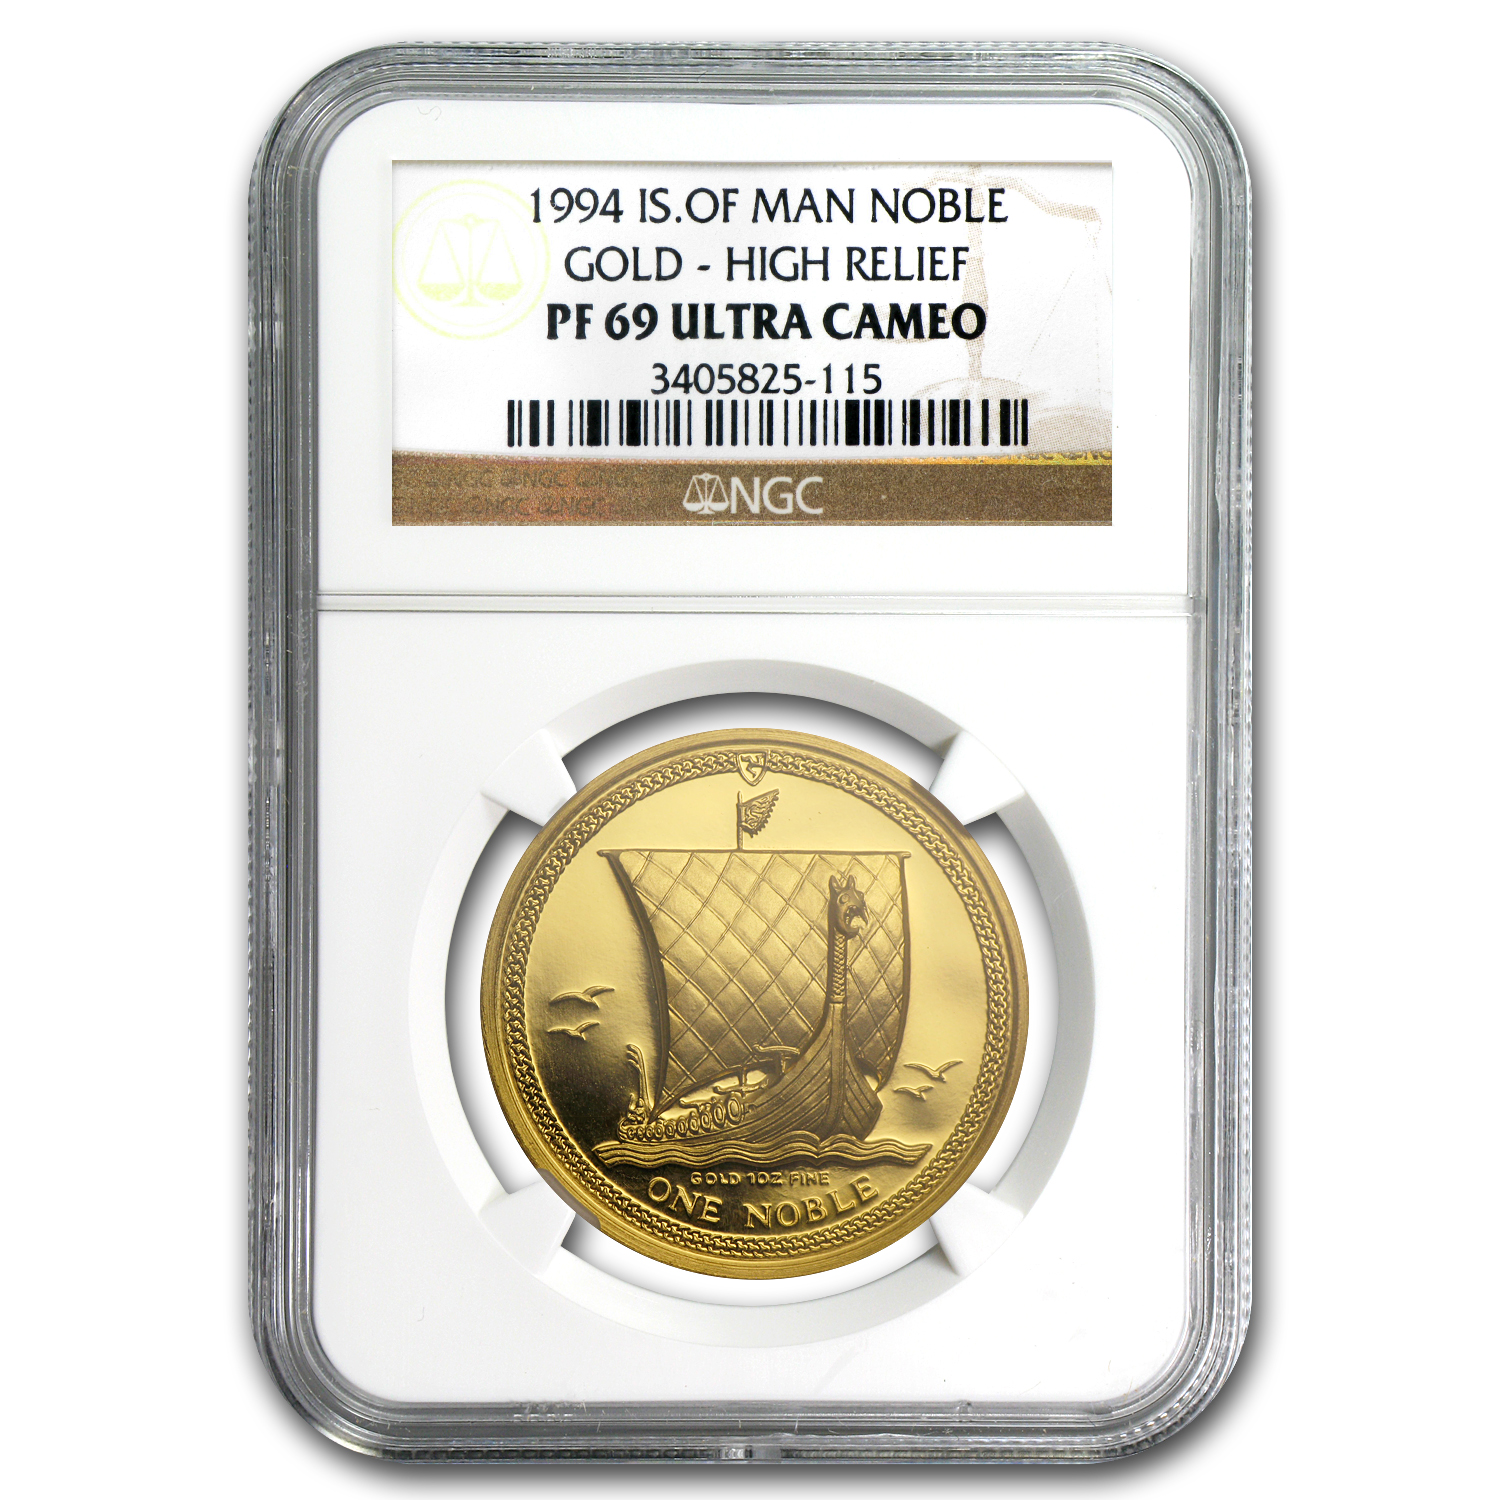 1994 Isle of Man 1 oz Proof Gold Noble High Relief PF-69 NGC